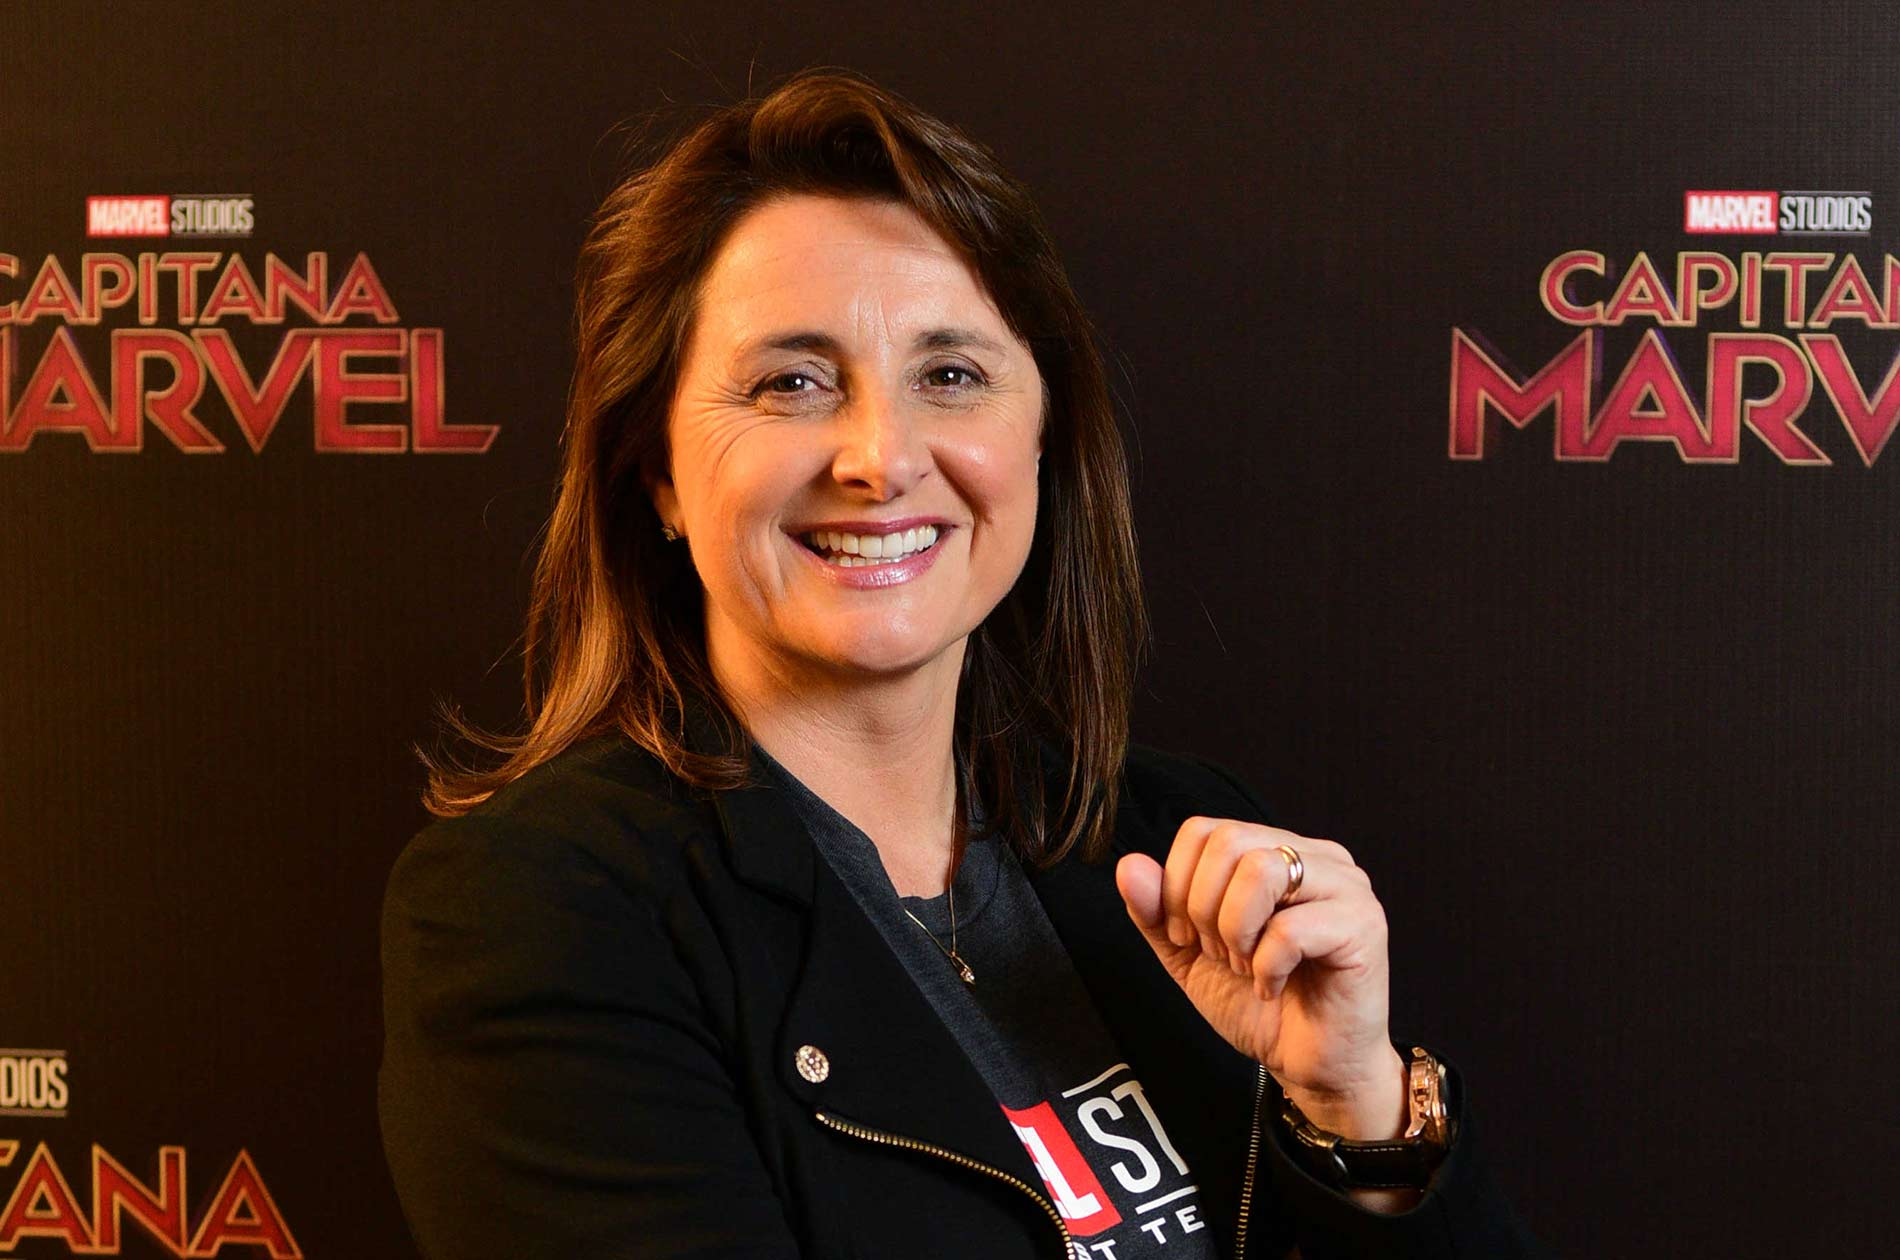 Avengers: Endgame – Marvel Studios' EVP Victoria Alonso on the Russos, What's Next for the MCU, the Diverse Future of the Franchise, and What's on Her Shelf